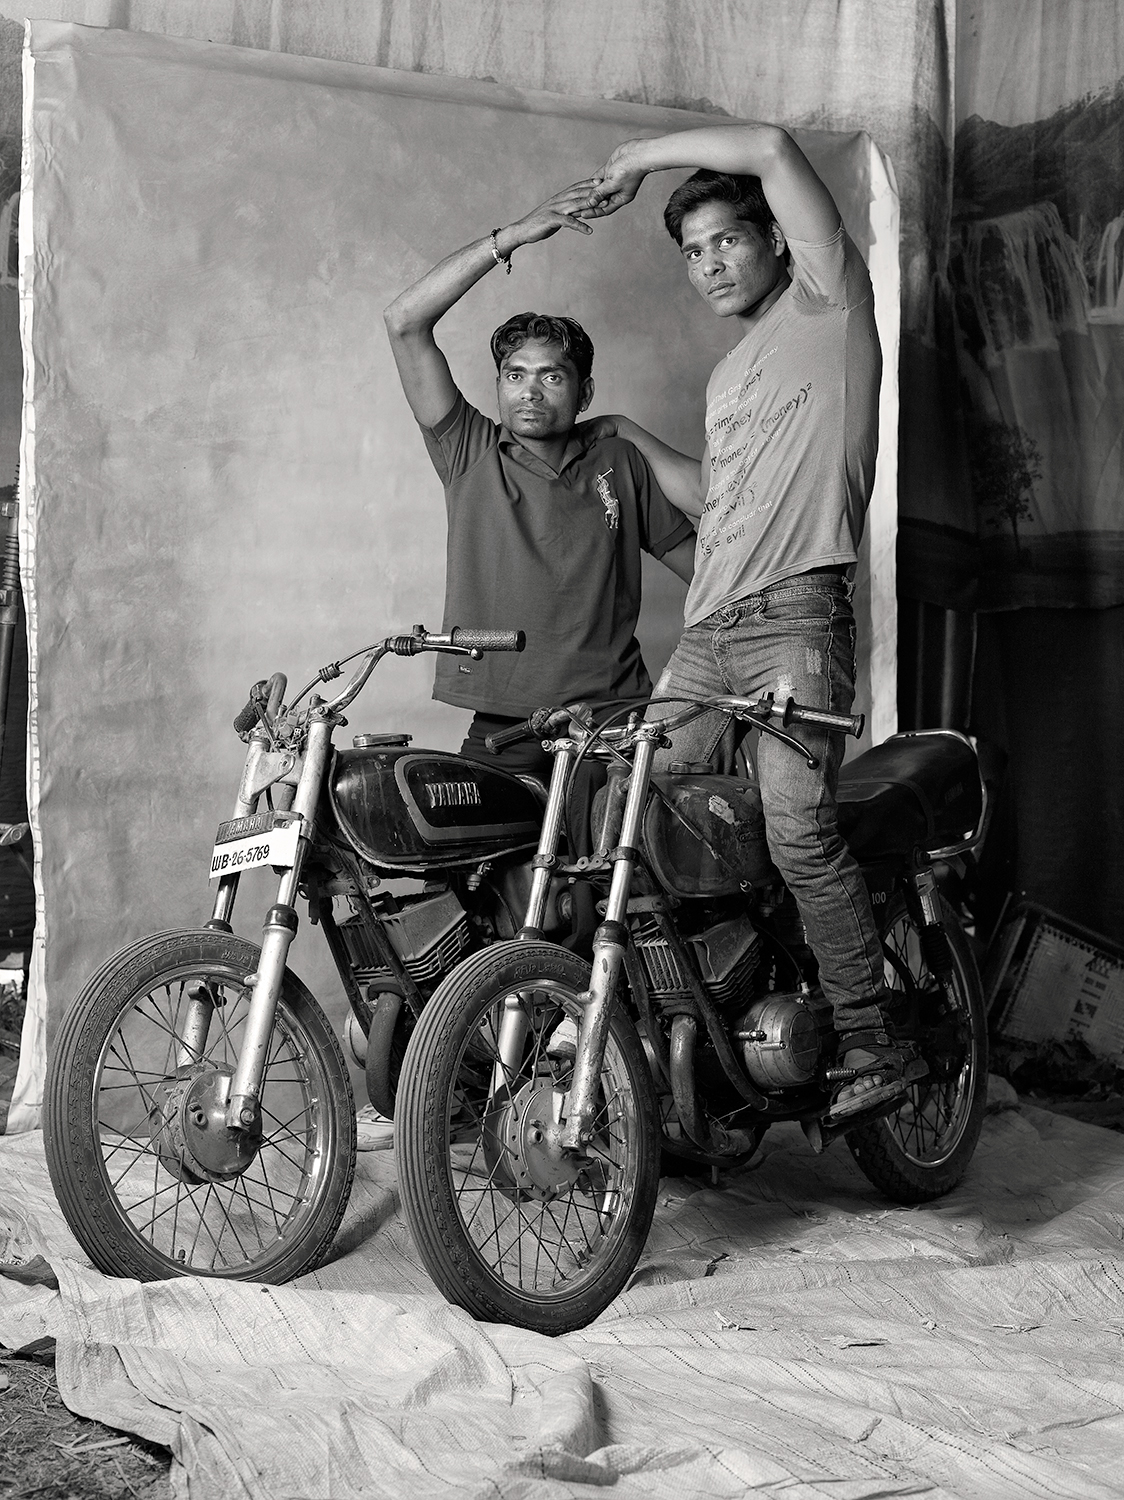 DEATH-WELL MOTORBIKE RIDERS, $40-55 WEEKLY, 2012